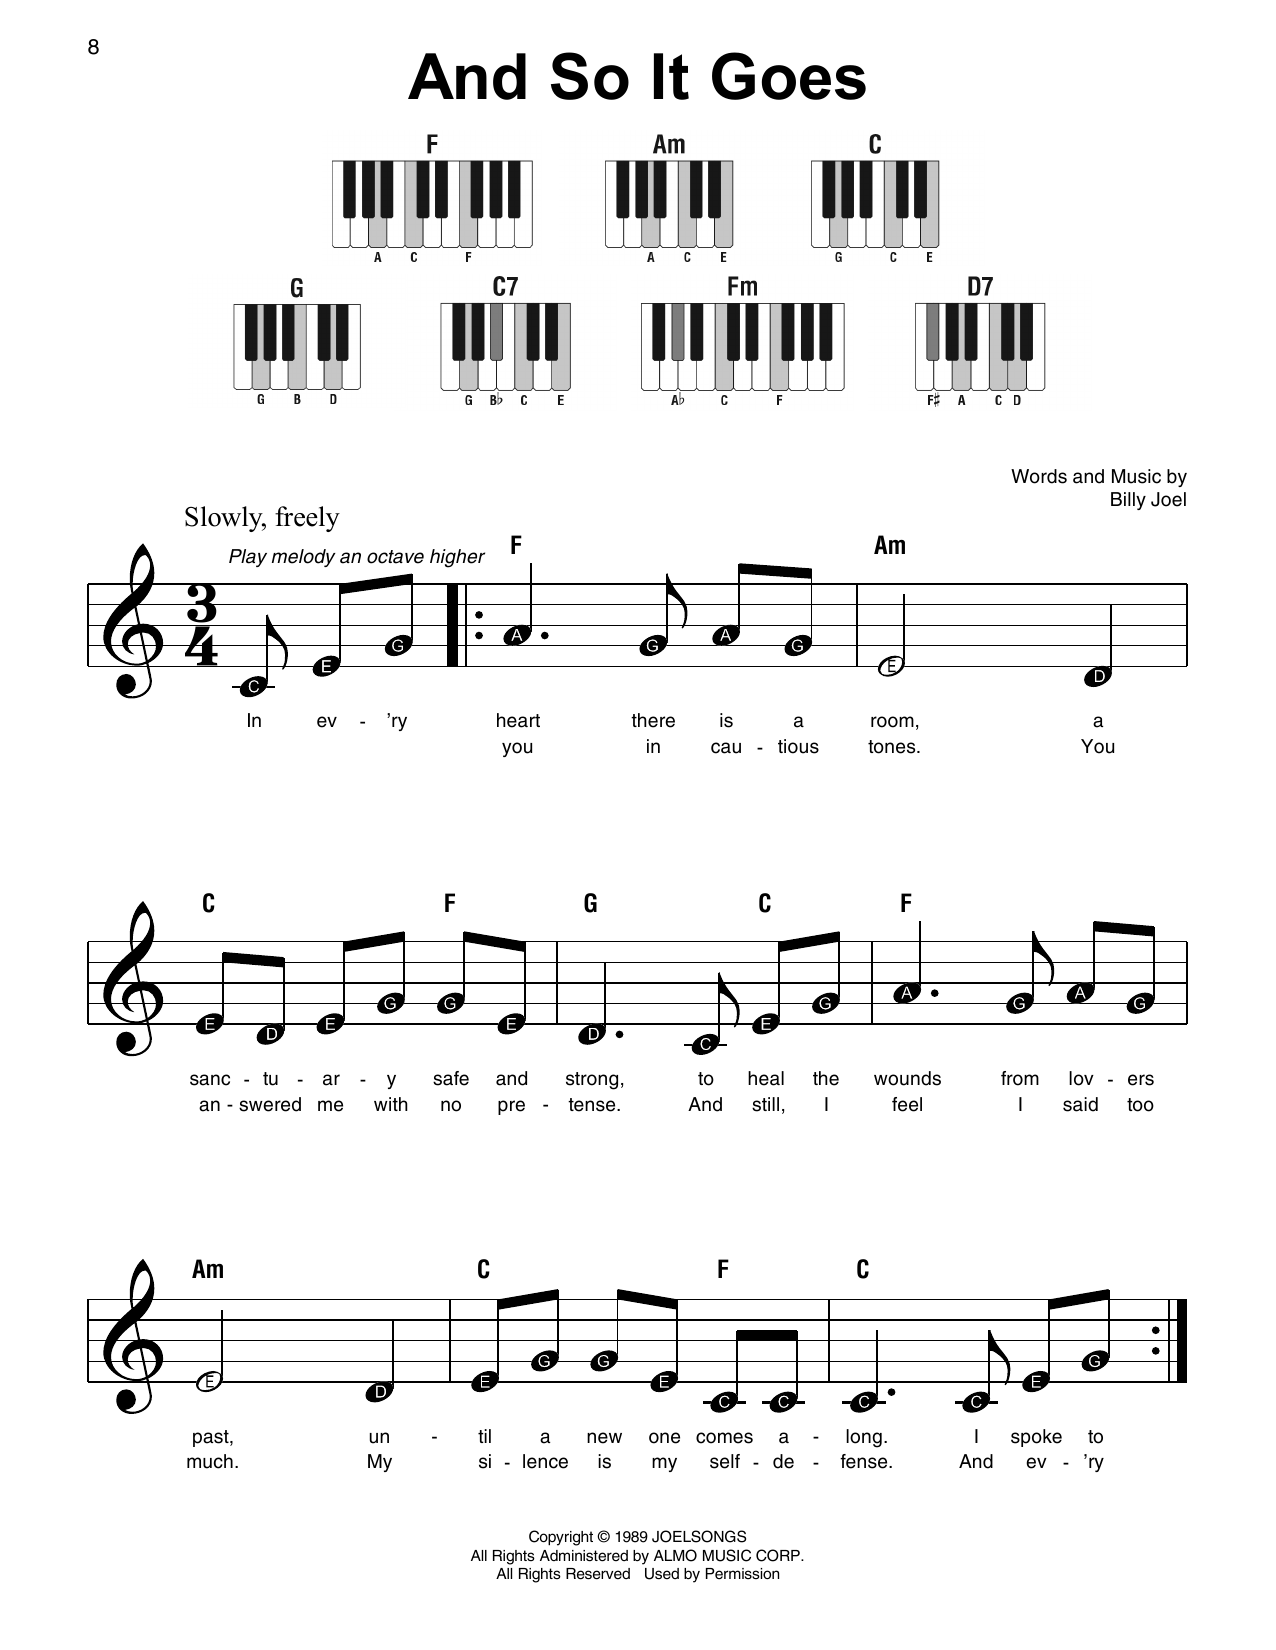 And So It Goes Sheet Music